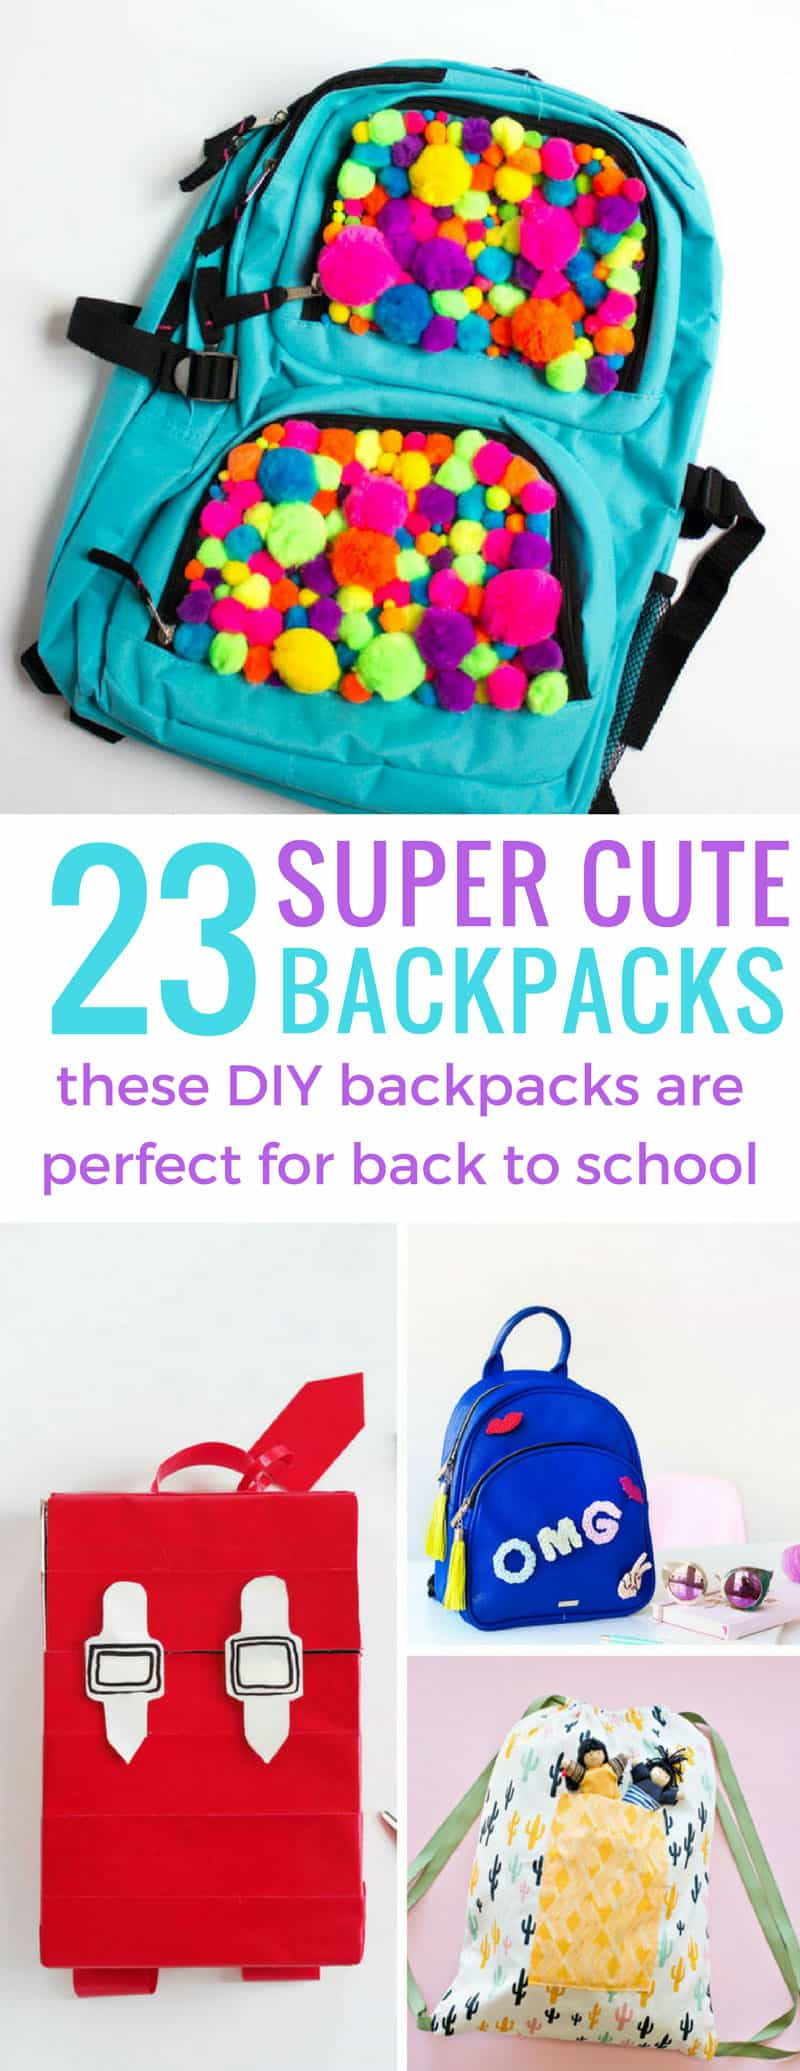 These DIY backpacks are super cute and perfect for back to school!